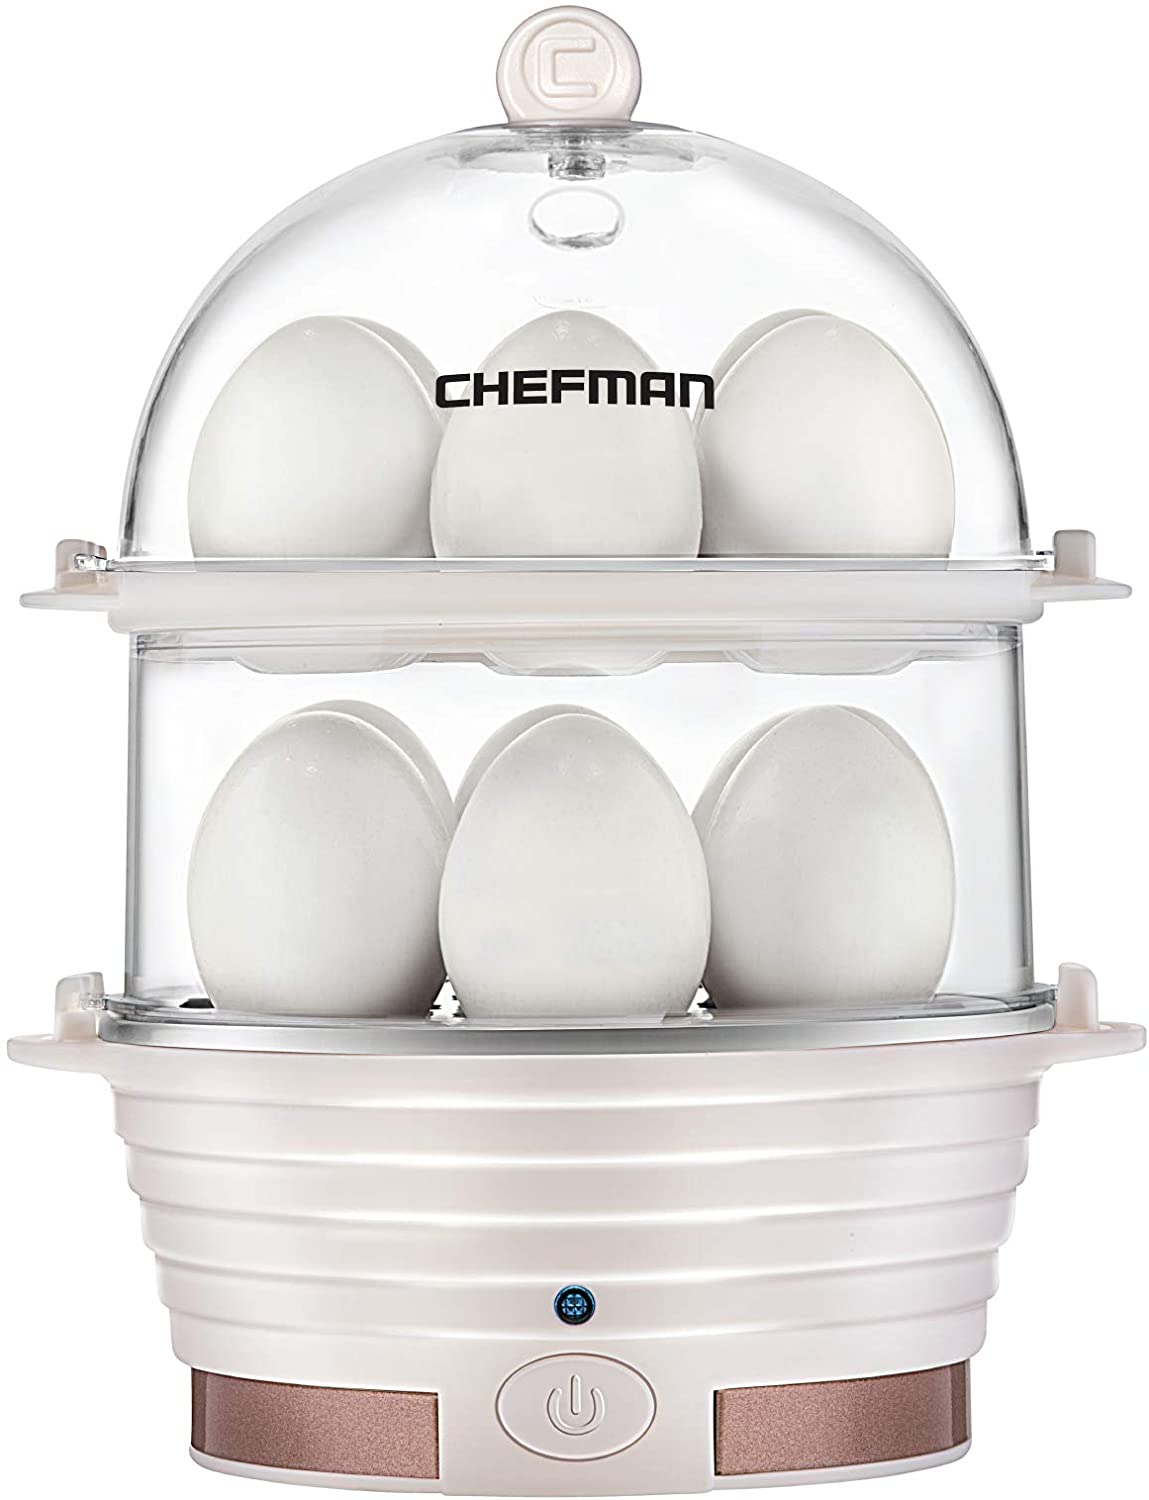 Chefman Electric Egg Cooker Boiler, Rapid Egg-Maker & Poacher, Food & Vegetable Steamer, Quickly Makes 12 Eggs, Hard or Soft Boiled, Poaching and Omelet Trays Included, Ready Signal, BPA-Free, Ivory